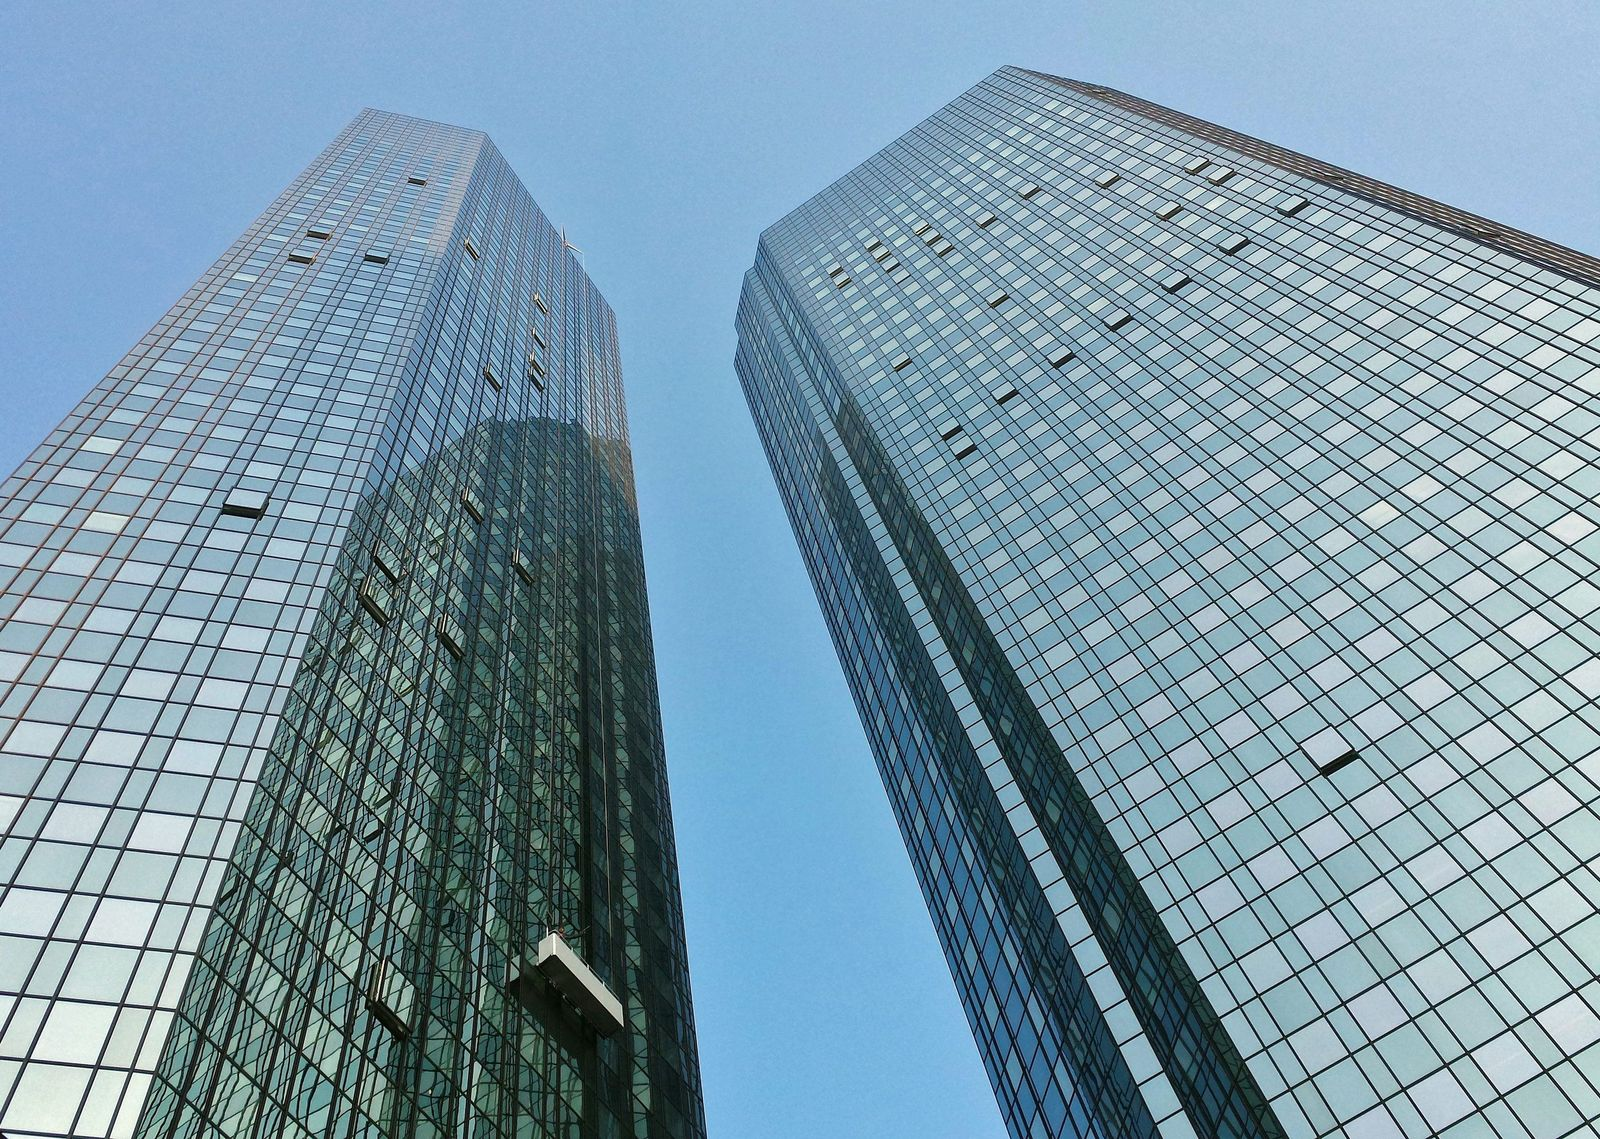 Window cleaners have a long way to go in Frankfurt